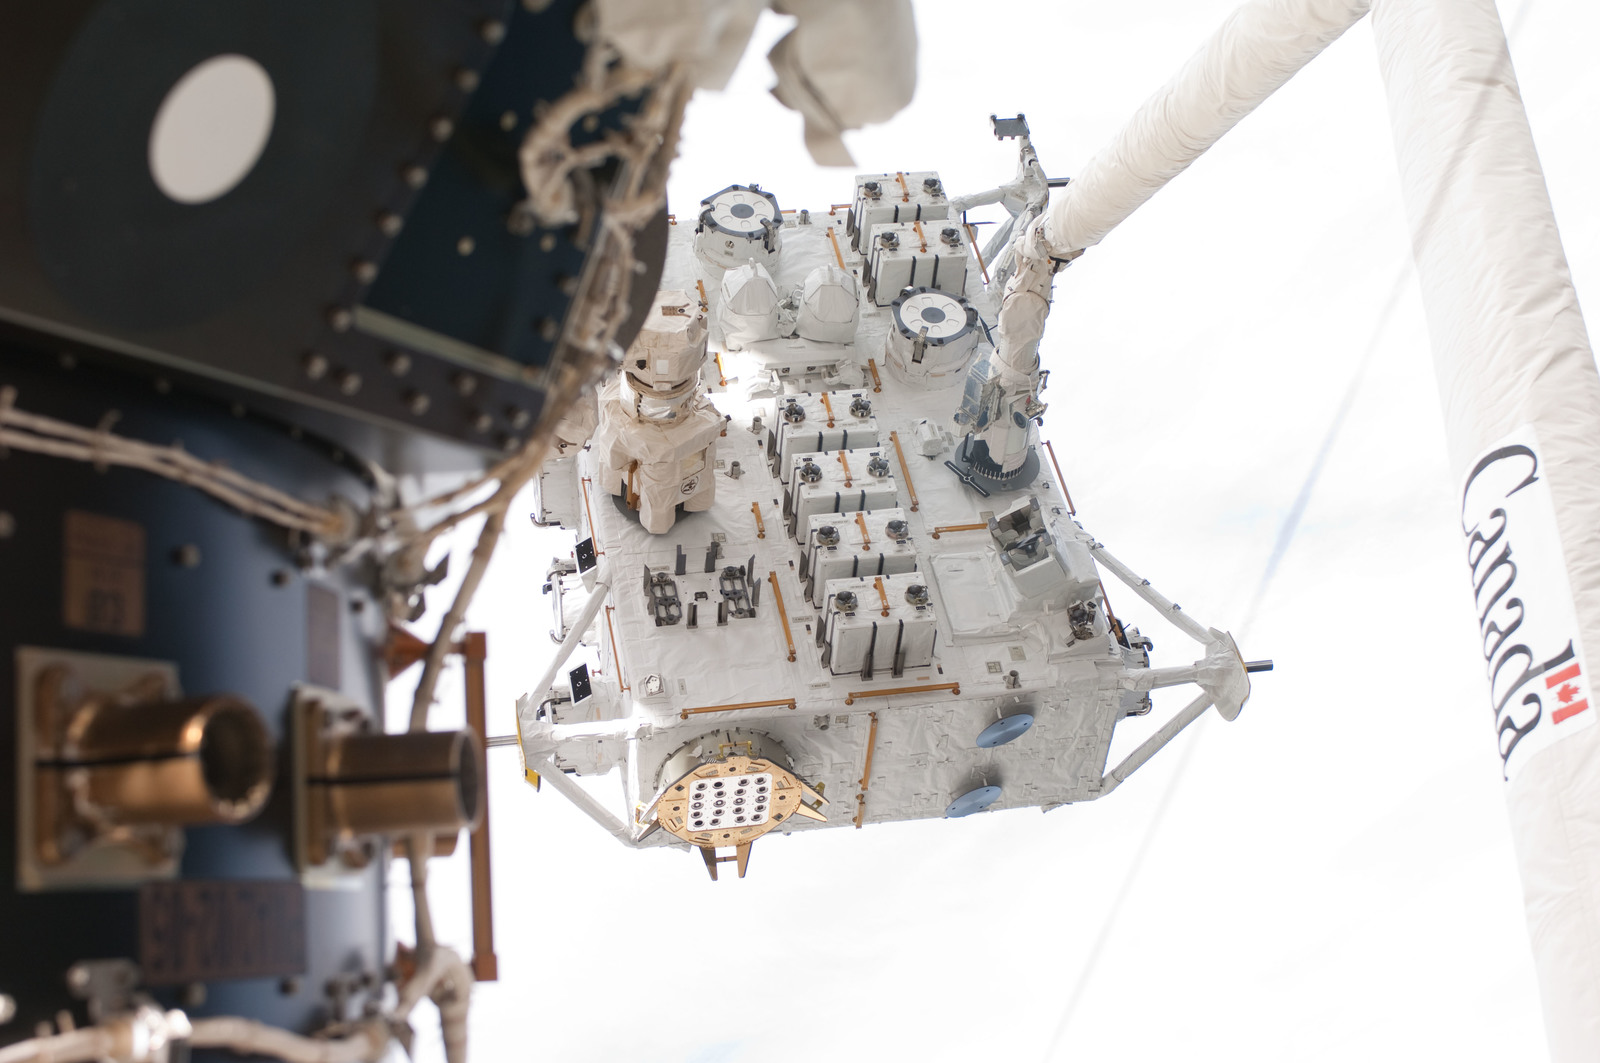 S127E006835 - STS-127 - SRMS moves JEF during EVA-1 on STS-127 / Expedition 20 Joint Operations